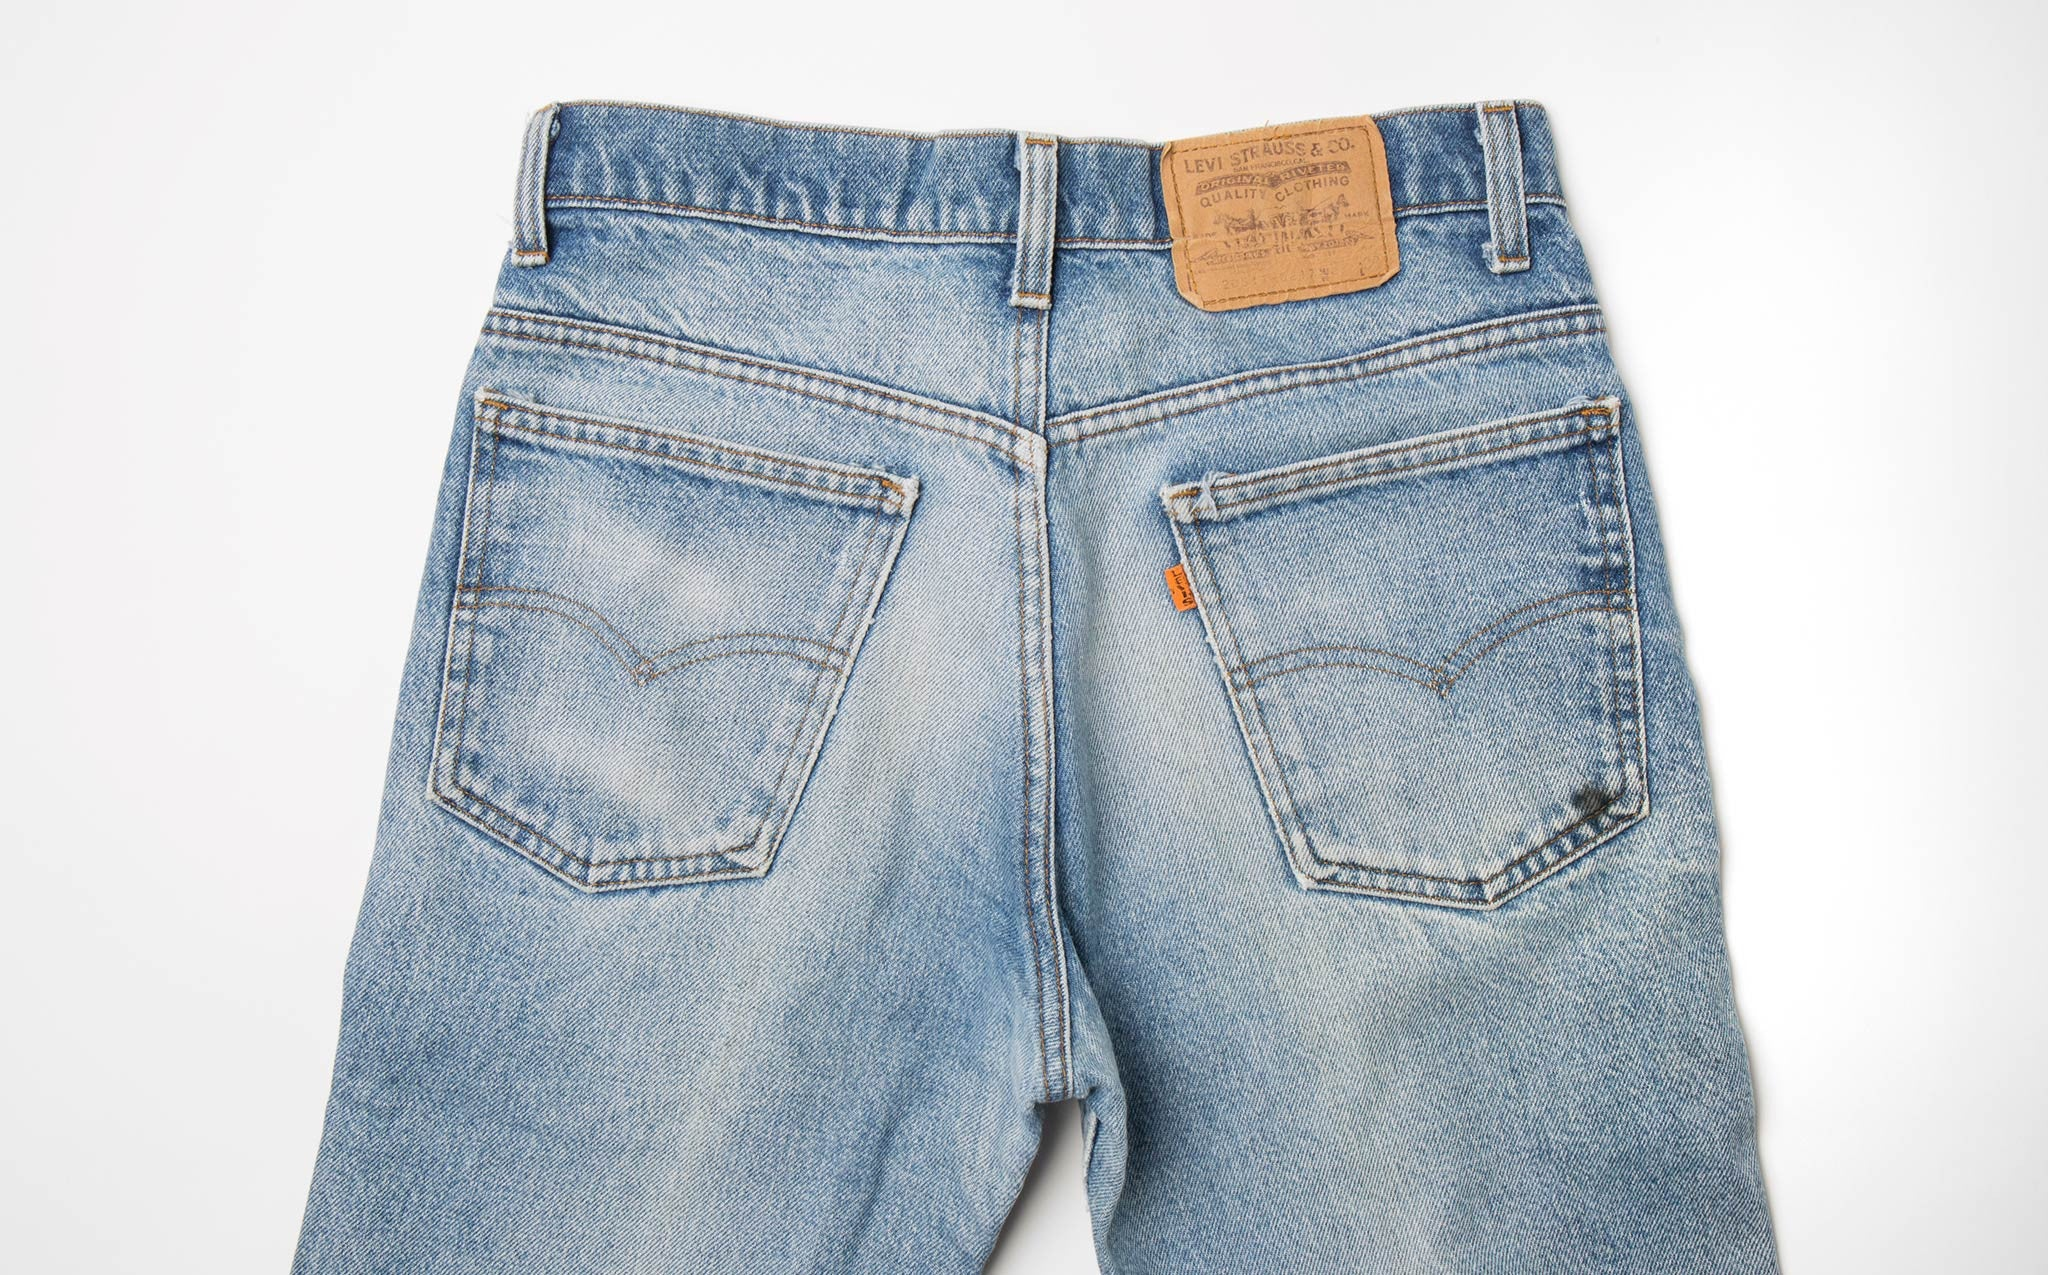 Levi's Orange Tab – Size 29/30 kindred black